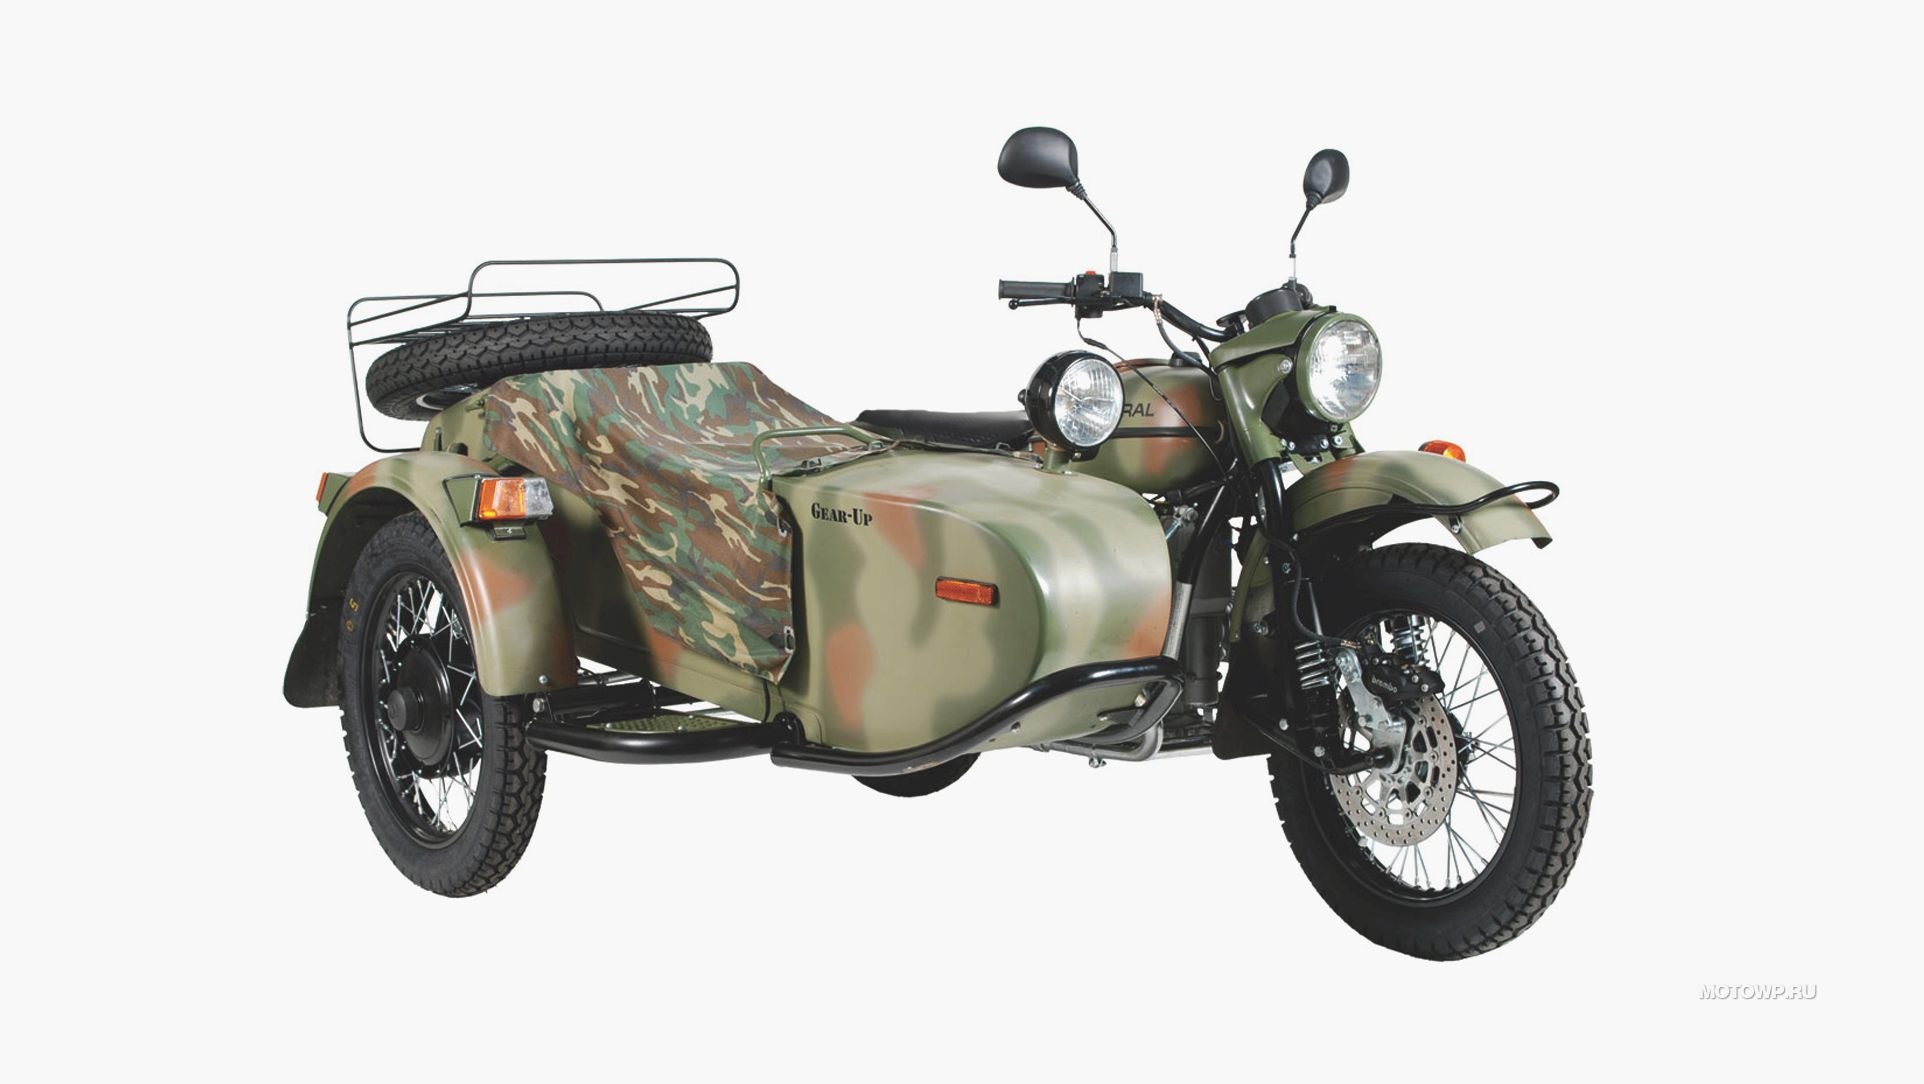 2011 Ural Snow Leopard Limited Edition #10